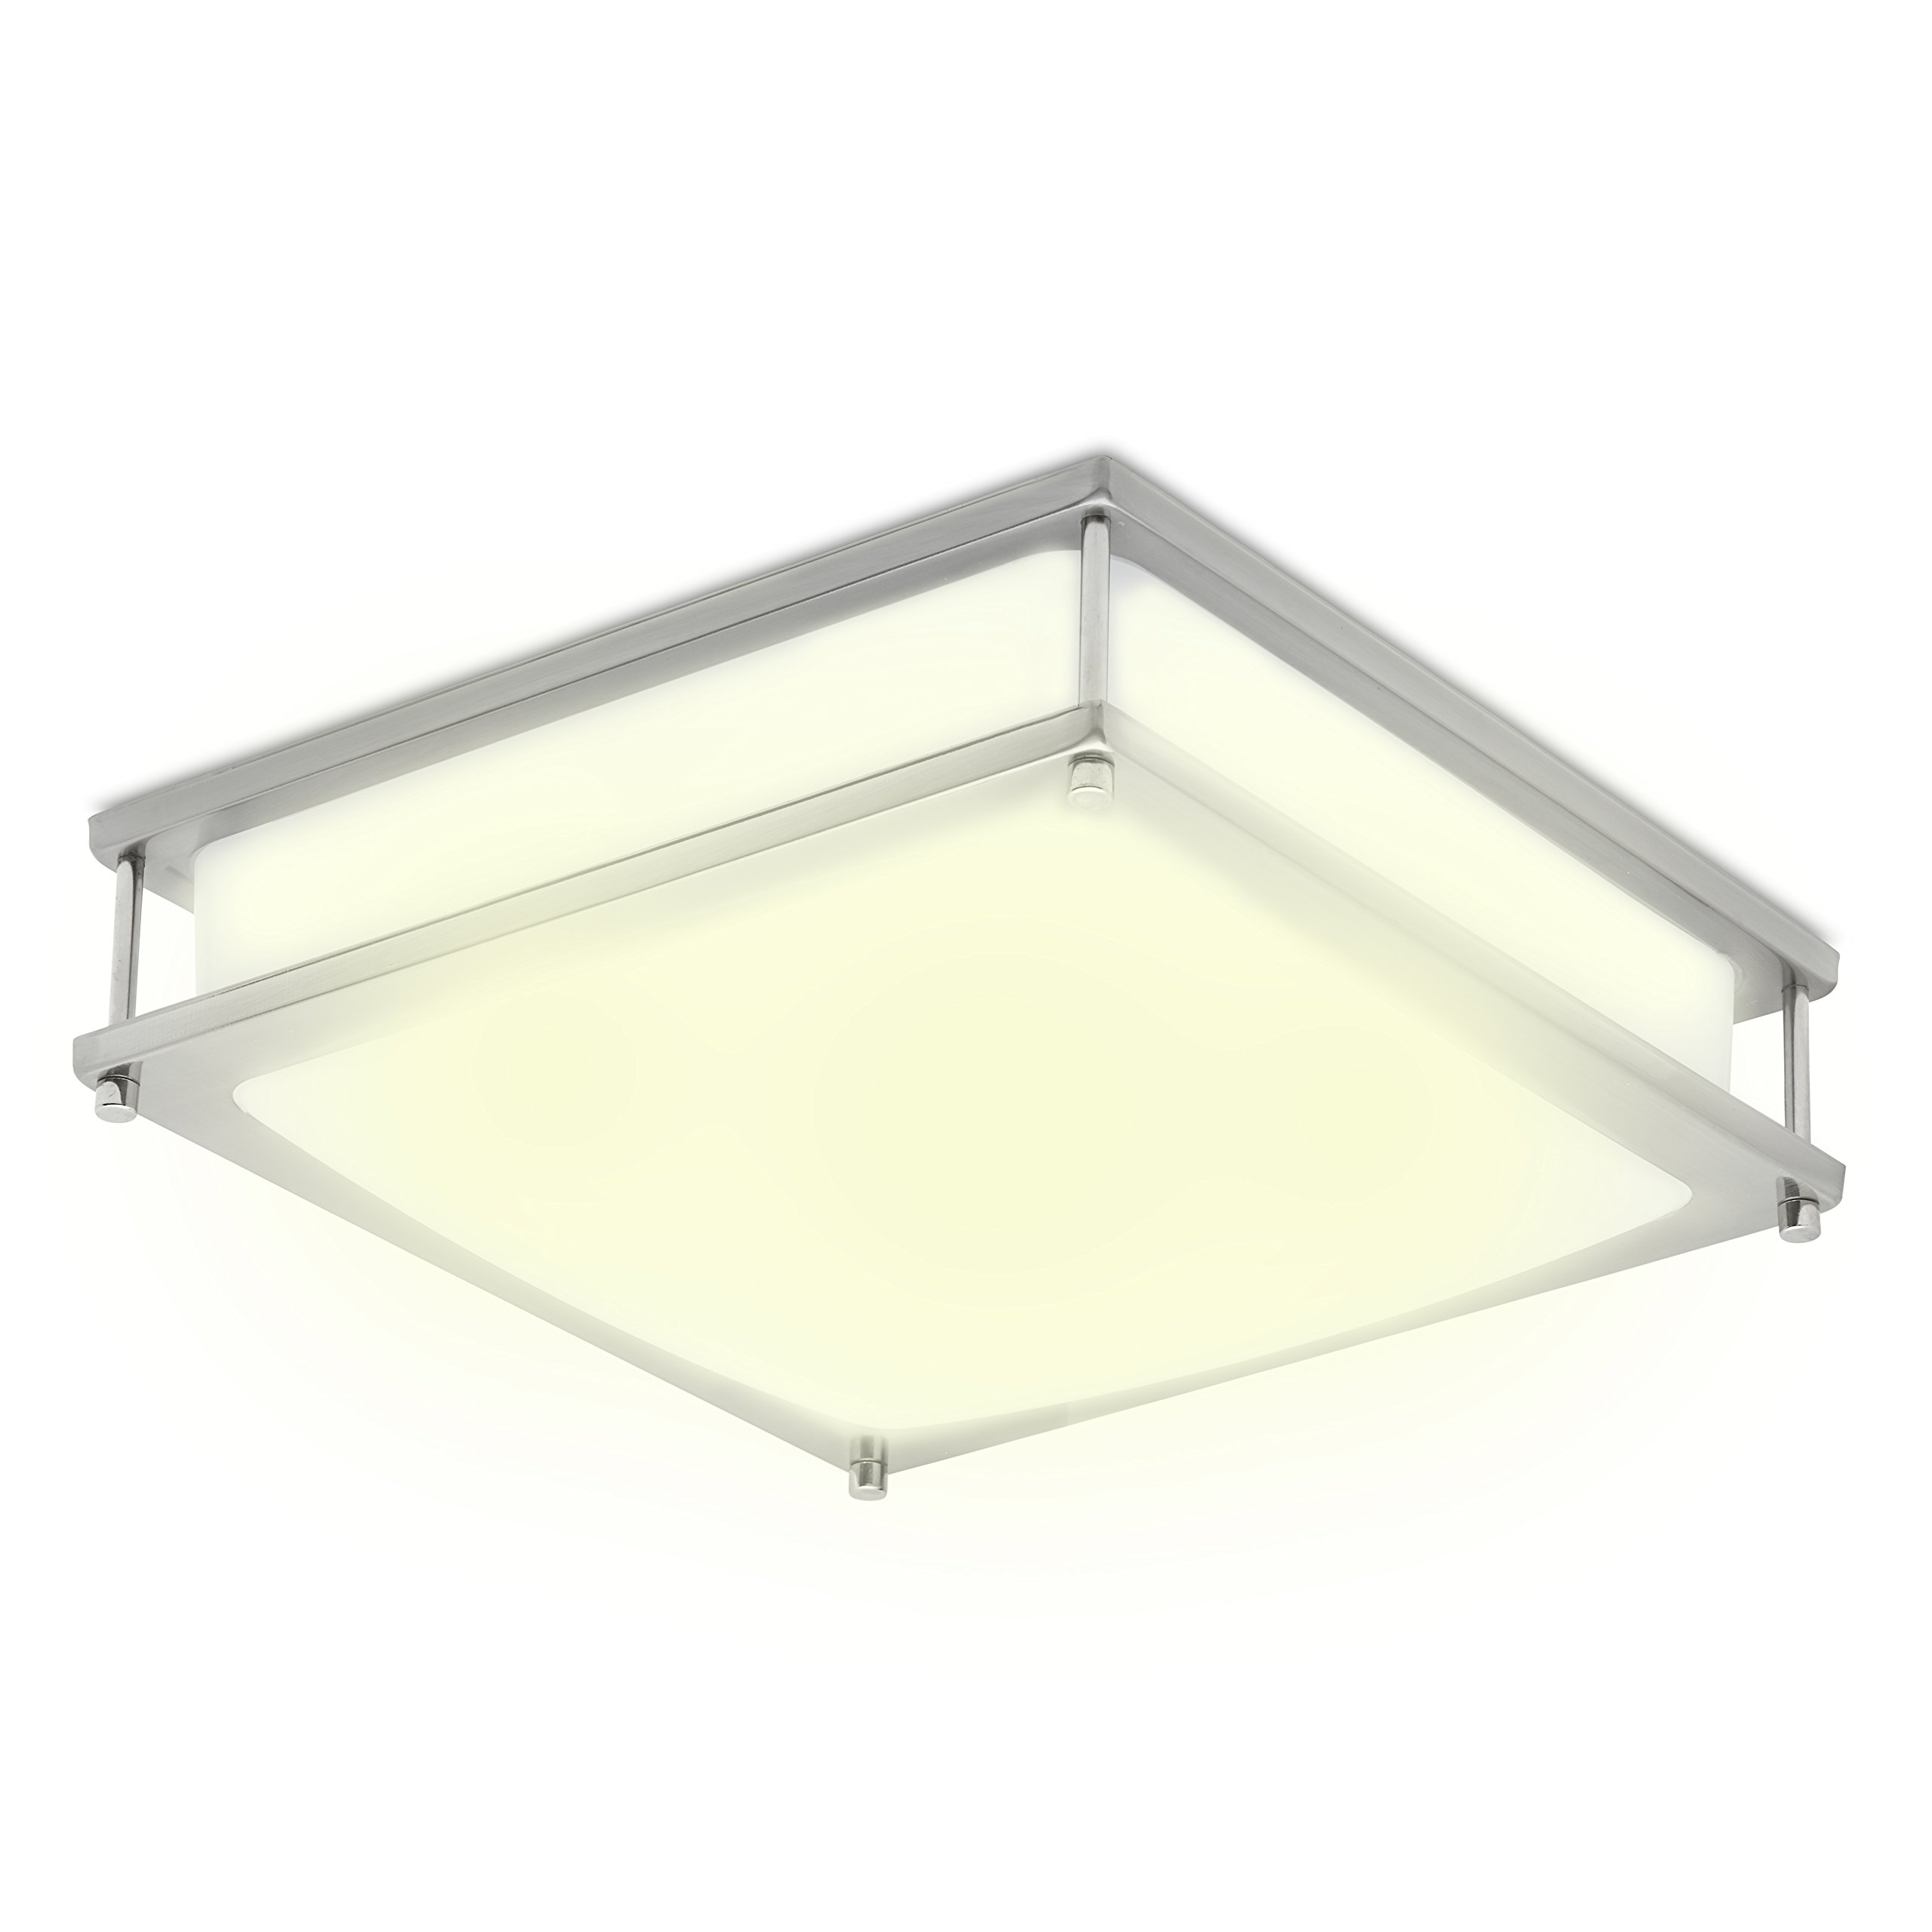 Green Beam Clarity 12 Inch Led Square Dimmable Ceiling